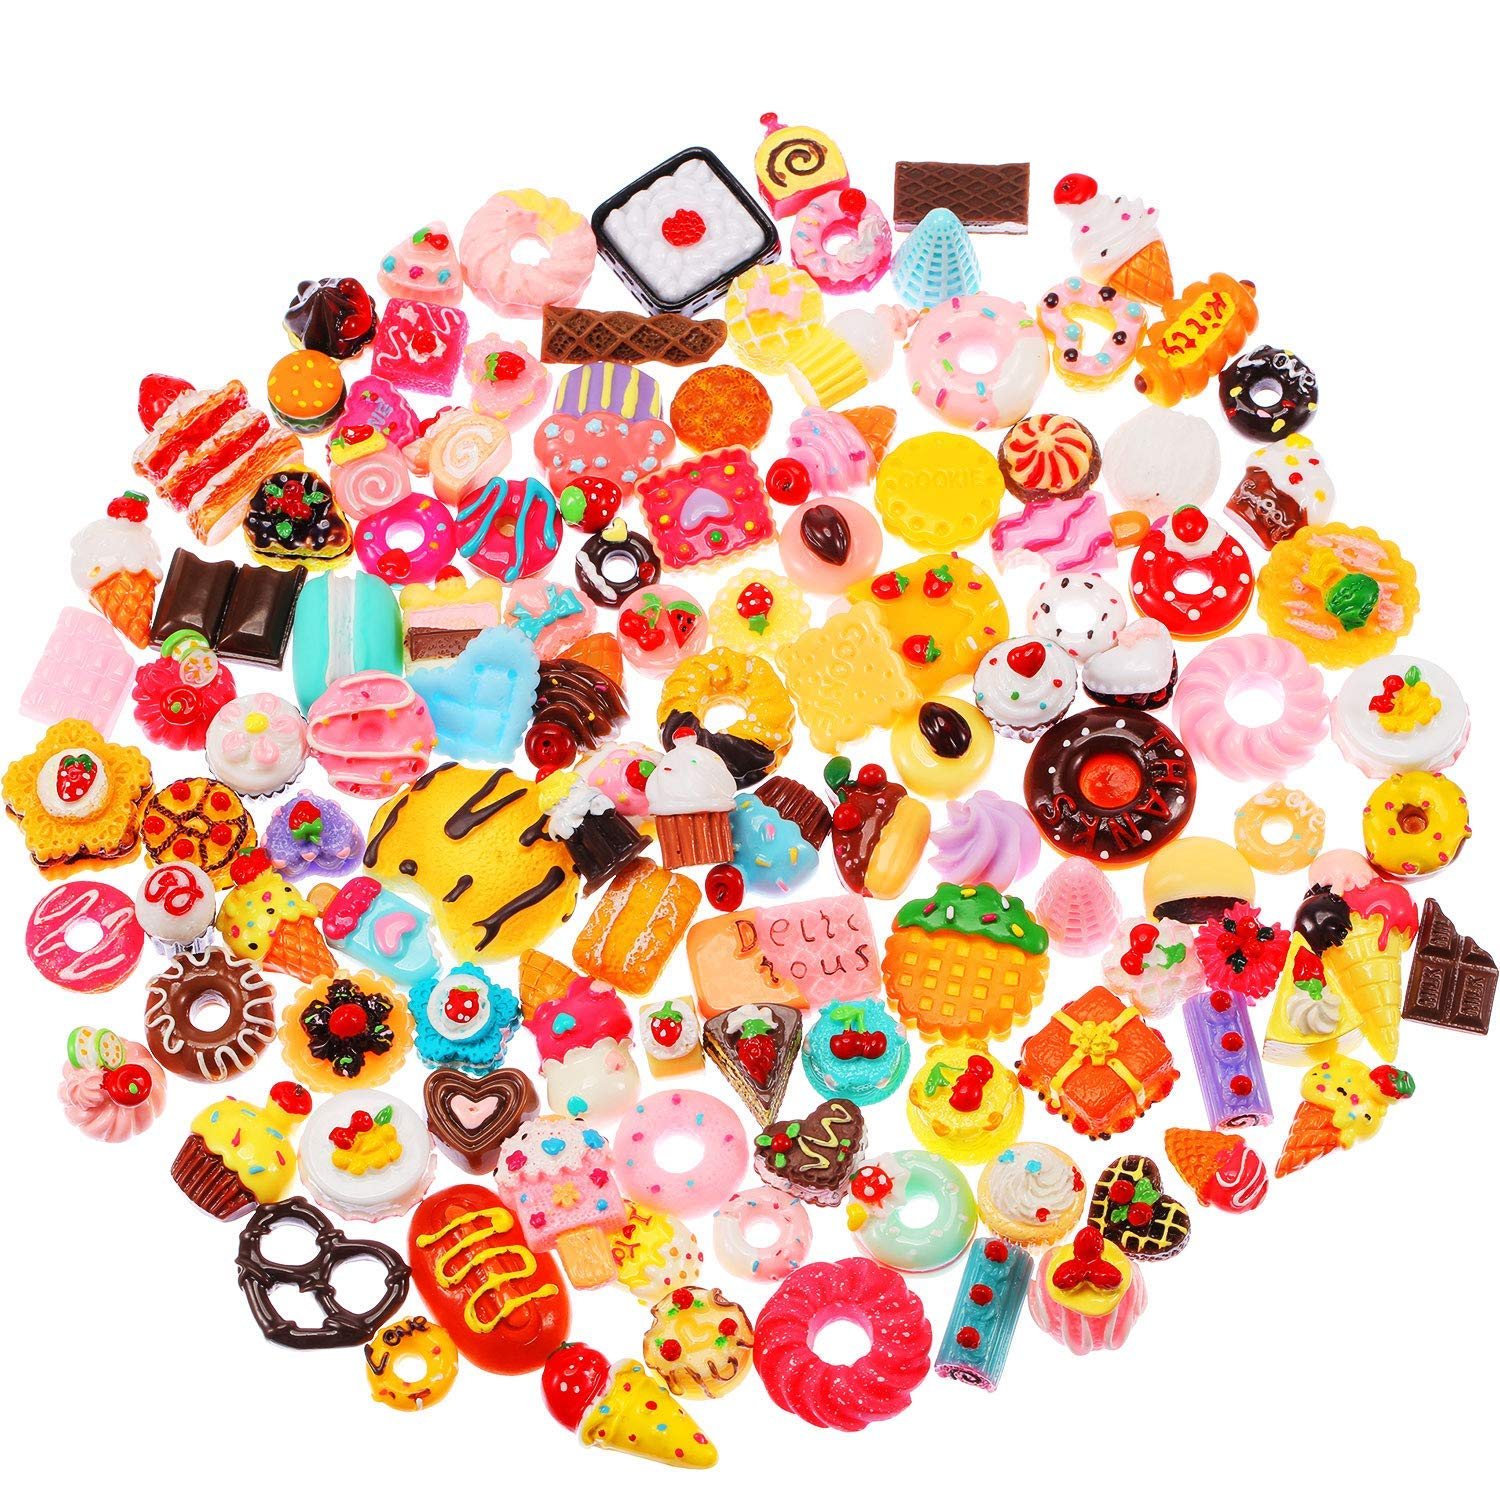 BBTO 120 Pieces Slime Charms Mixed Food Cake Ice-Cream Chocolate Cookie Dessert Resin Flatback Slime Beads Making Supplies for DIY Crafts